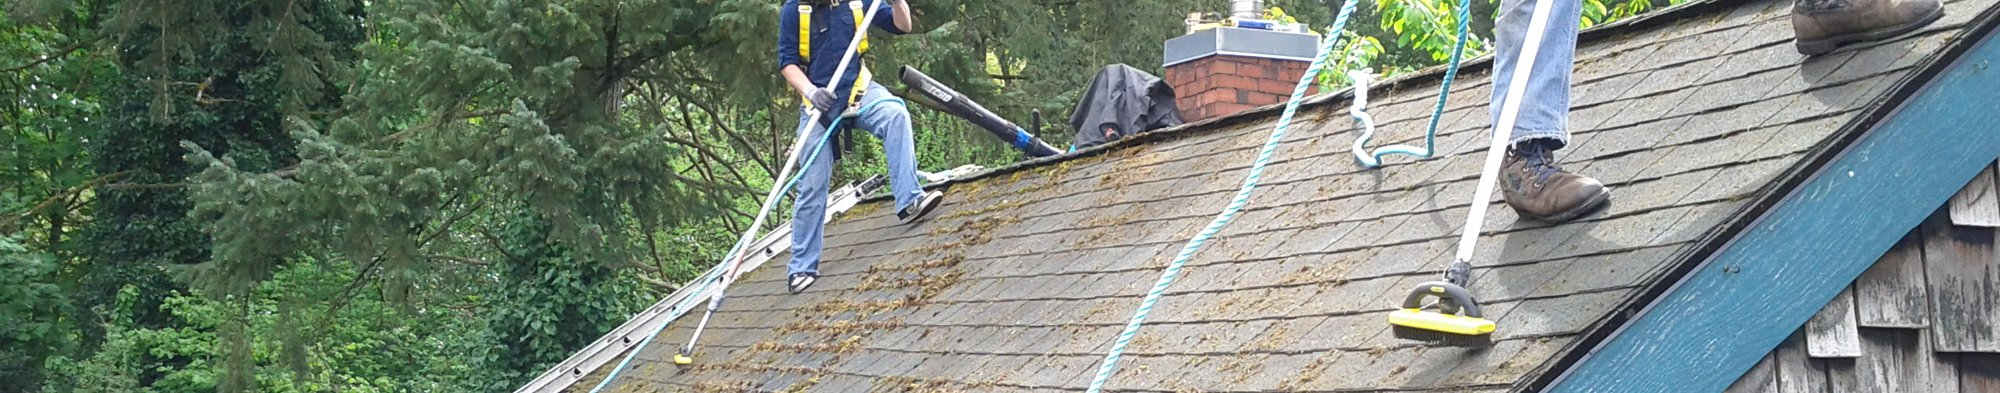 Roof Cleaners Ipswich